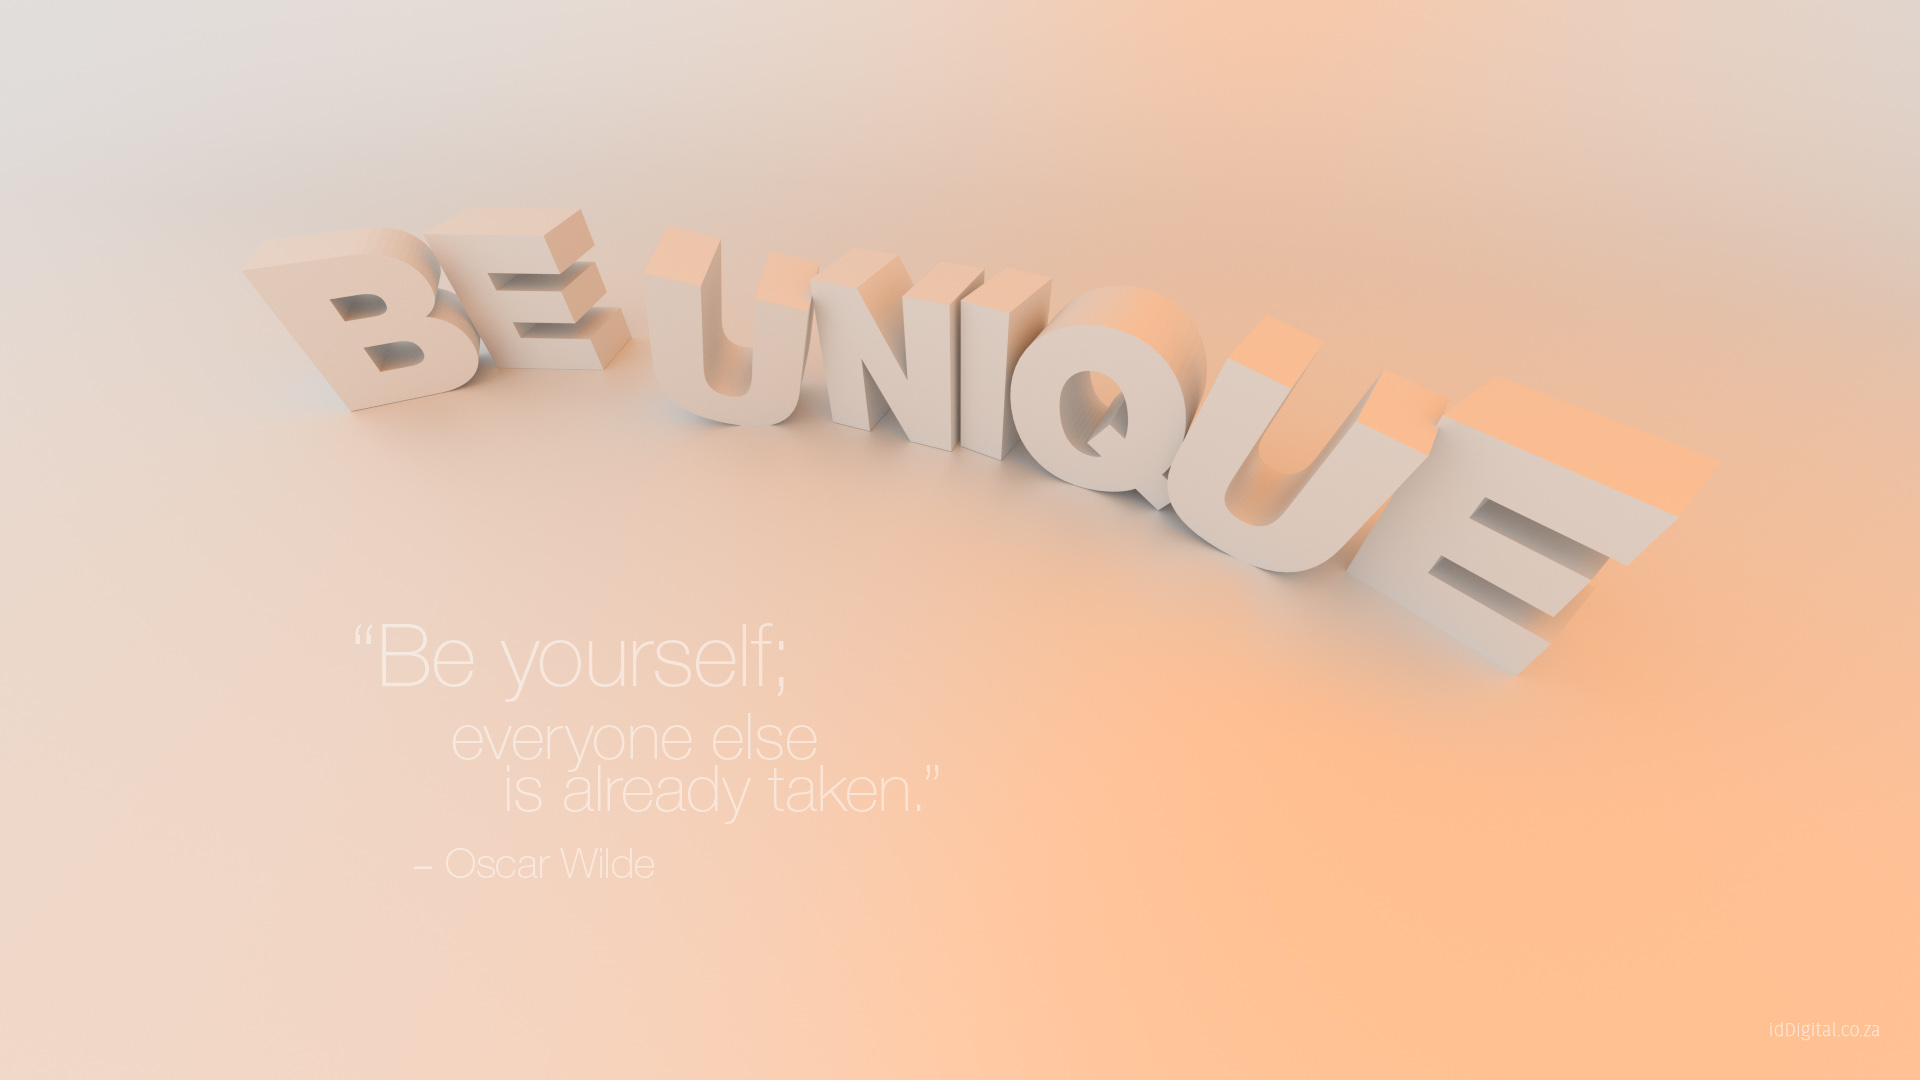 Be Unique - Wallpaper Freebie